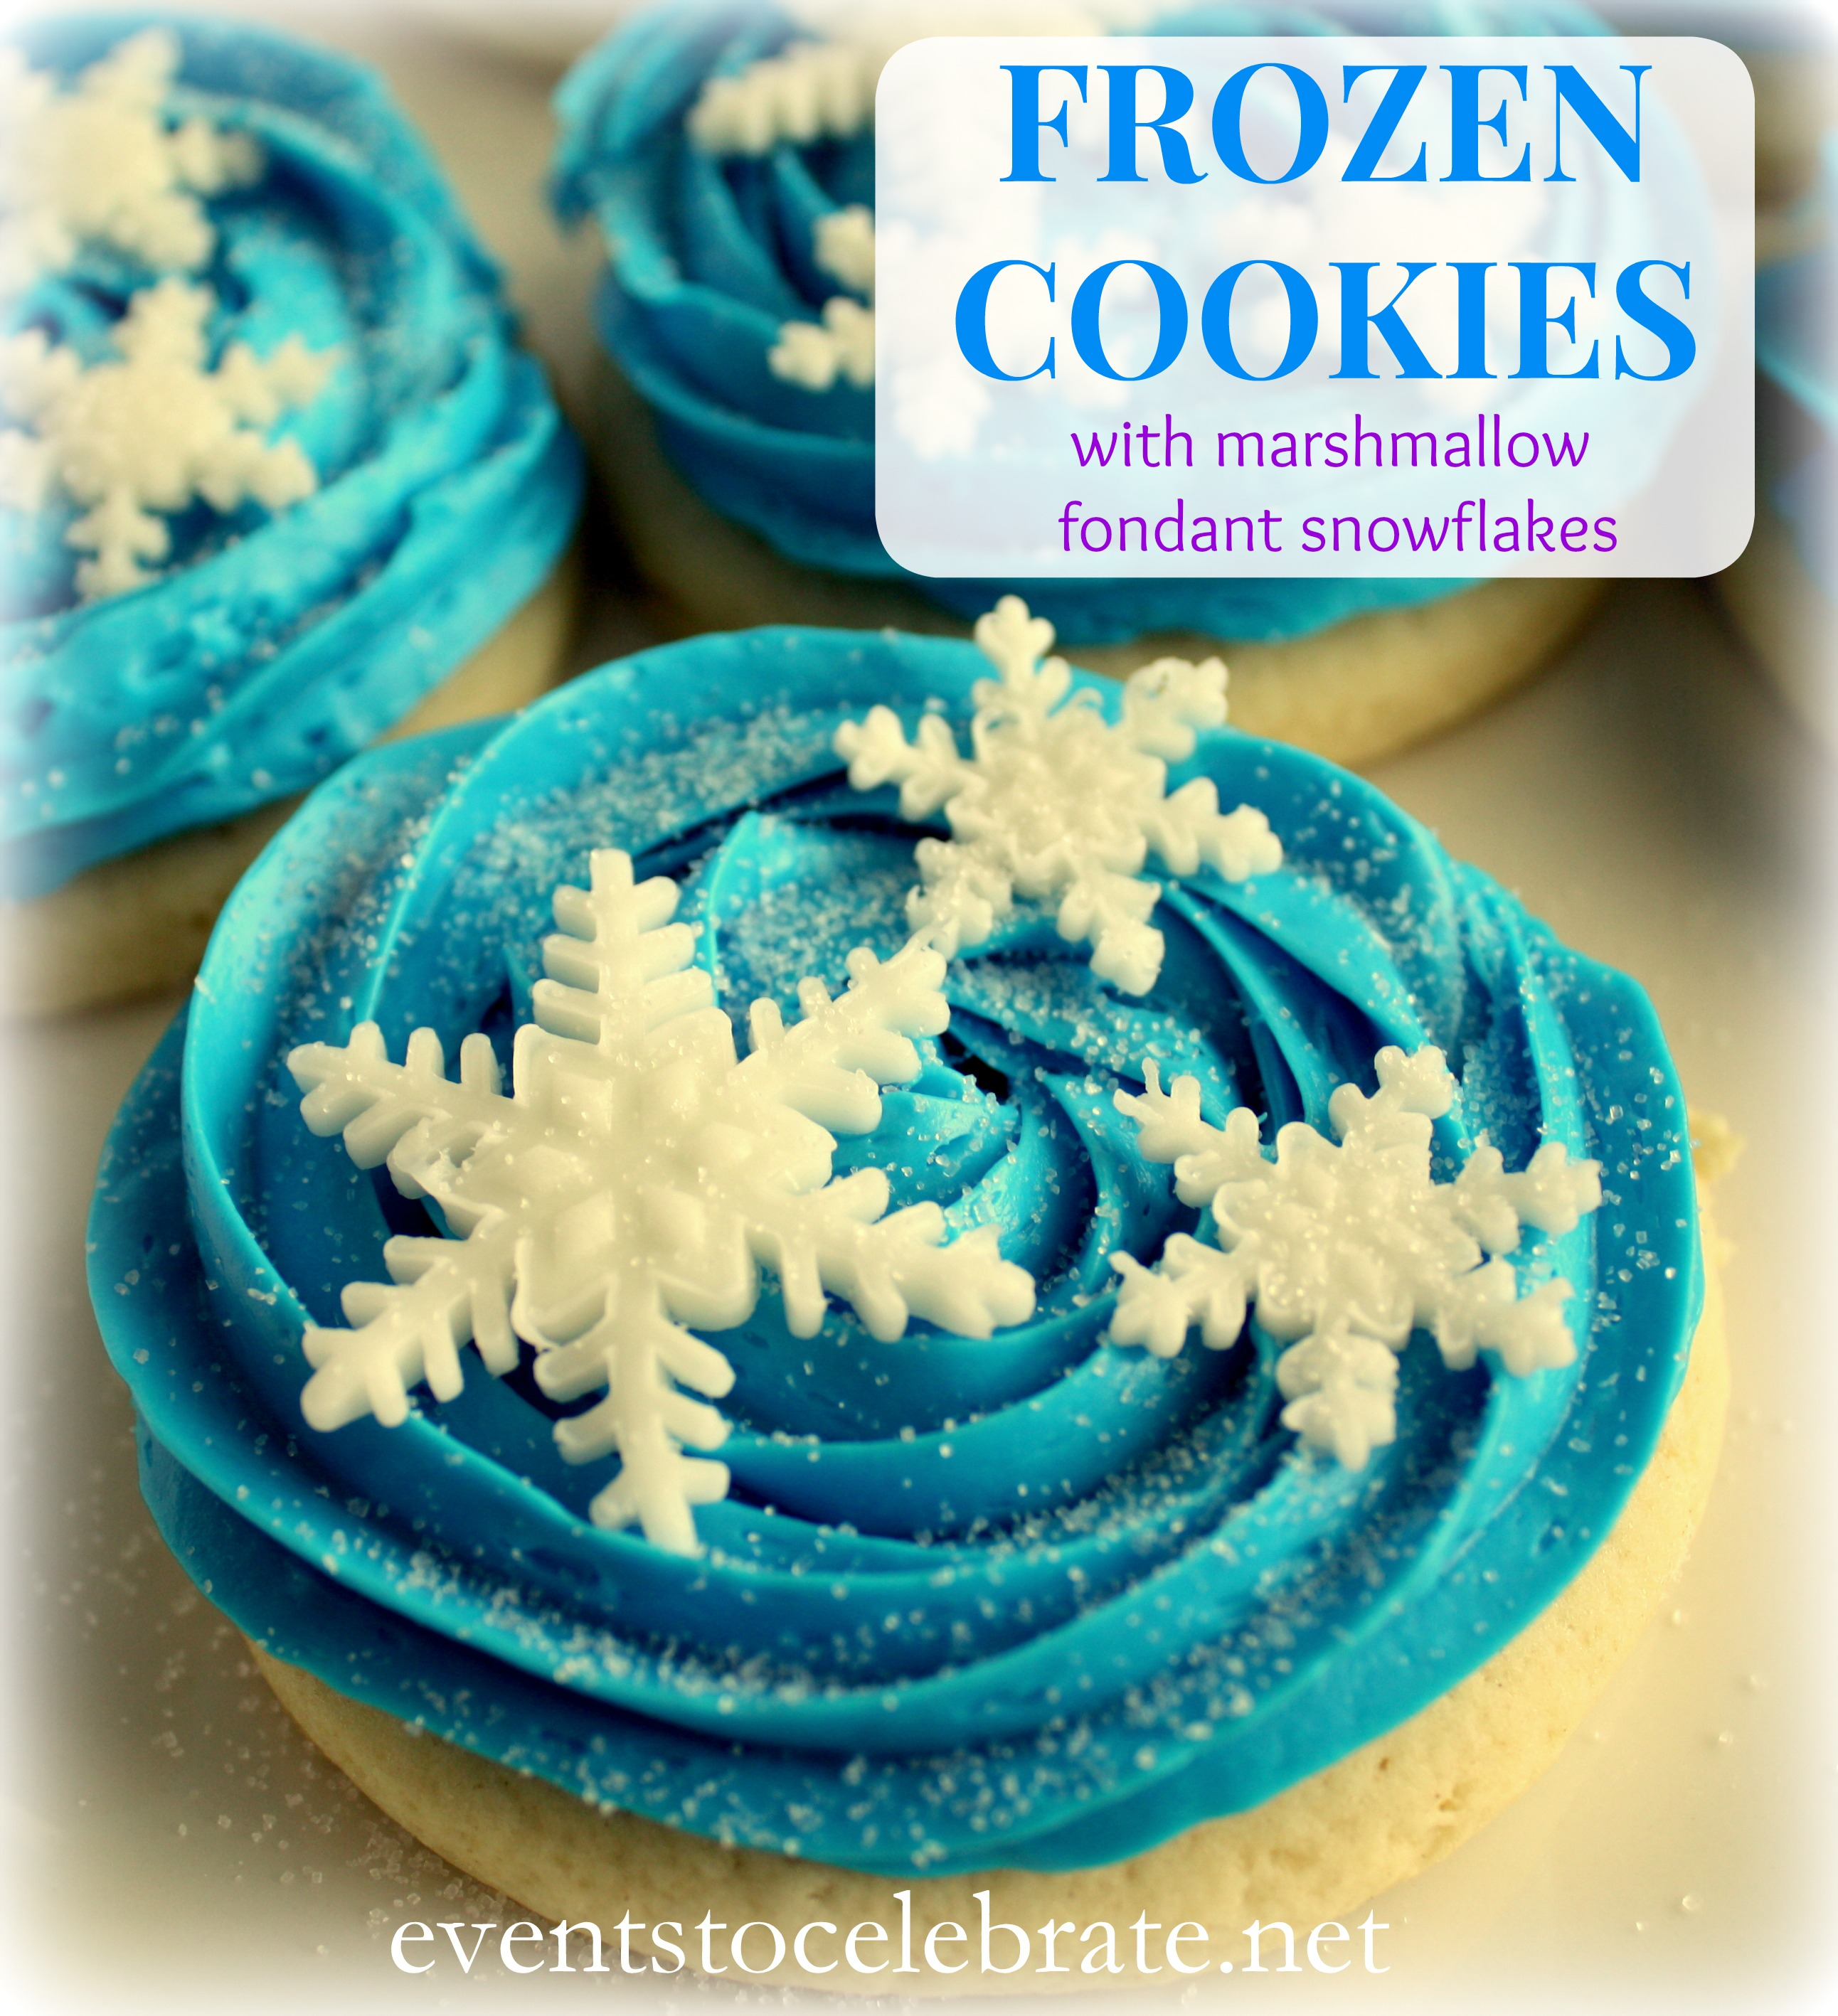 Frozen cookies or cupcakes - recipe and instructions - Events To Celebrate